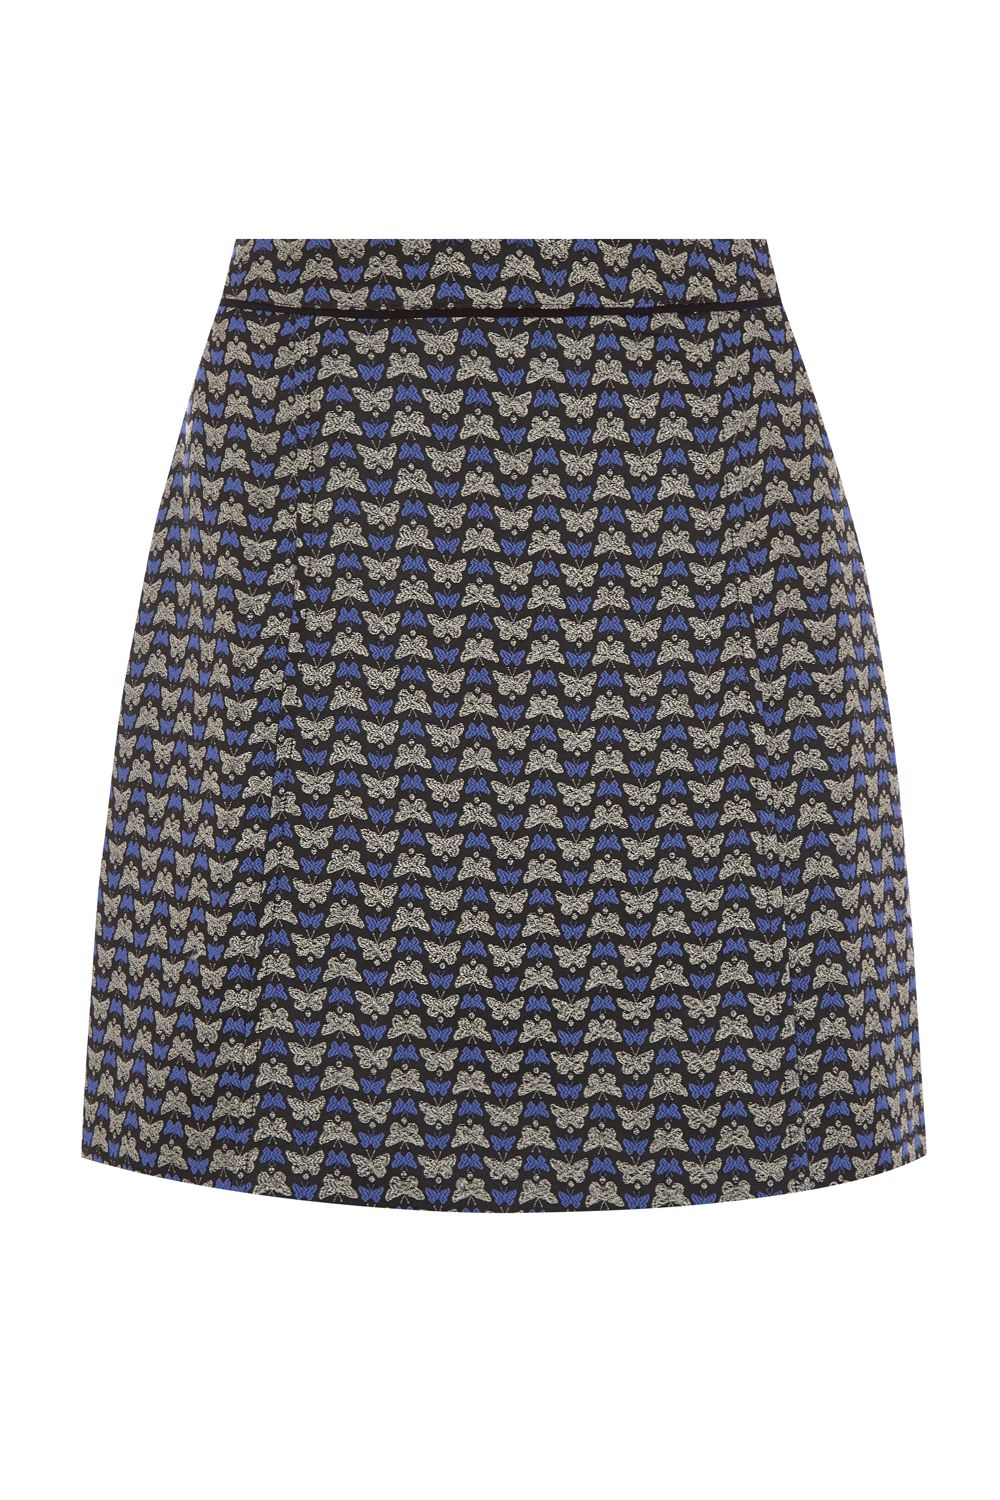 Oasis Butterfly Jacquard Skirt, Multi-Coloured